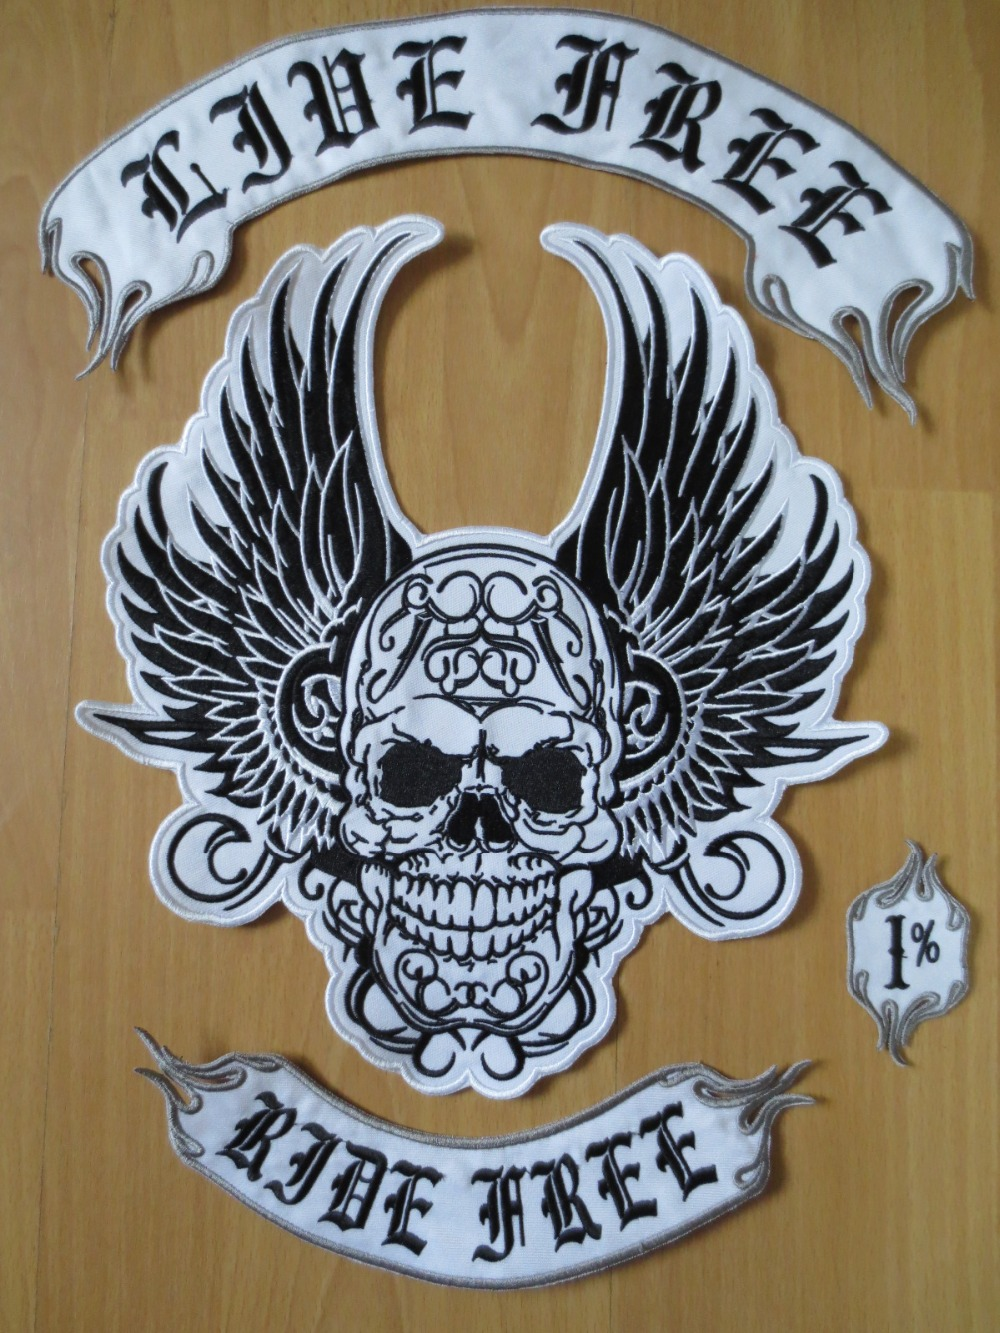 the flying skull Huge Wings large Embroidery Patches for Jacket Motorcycle Biker Ride free